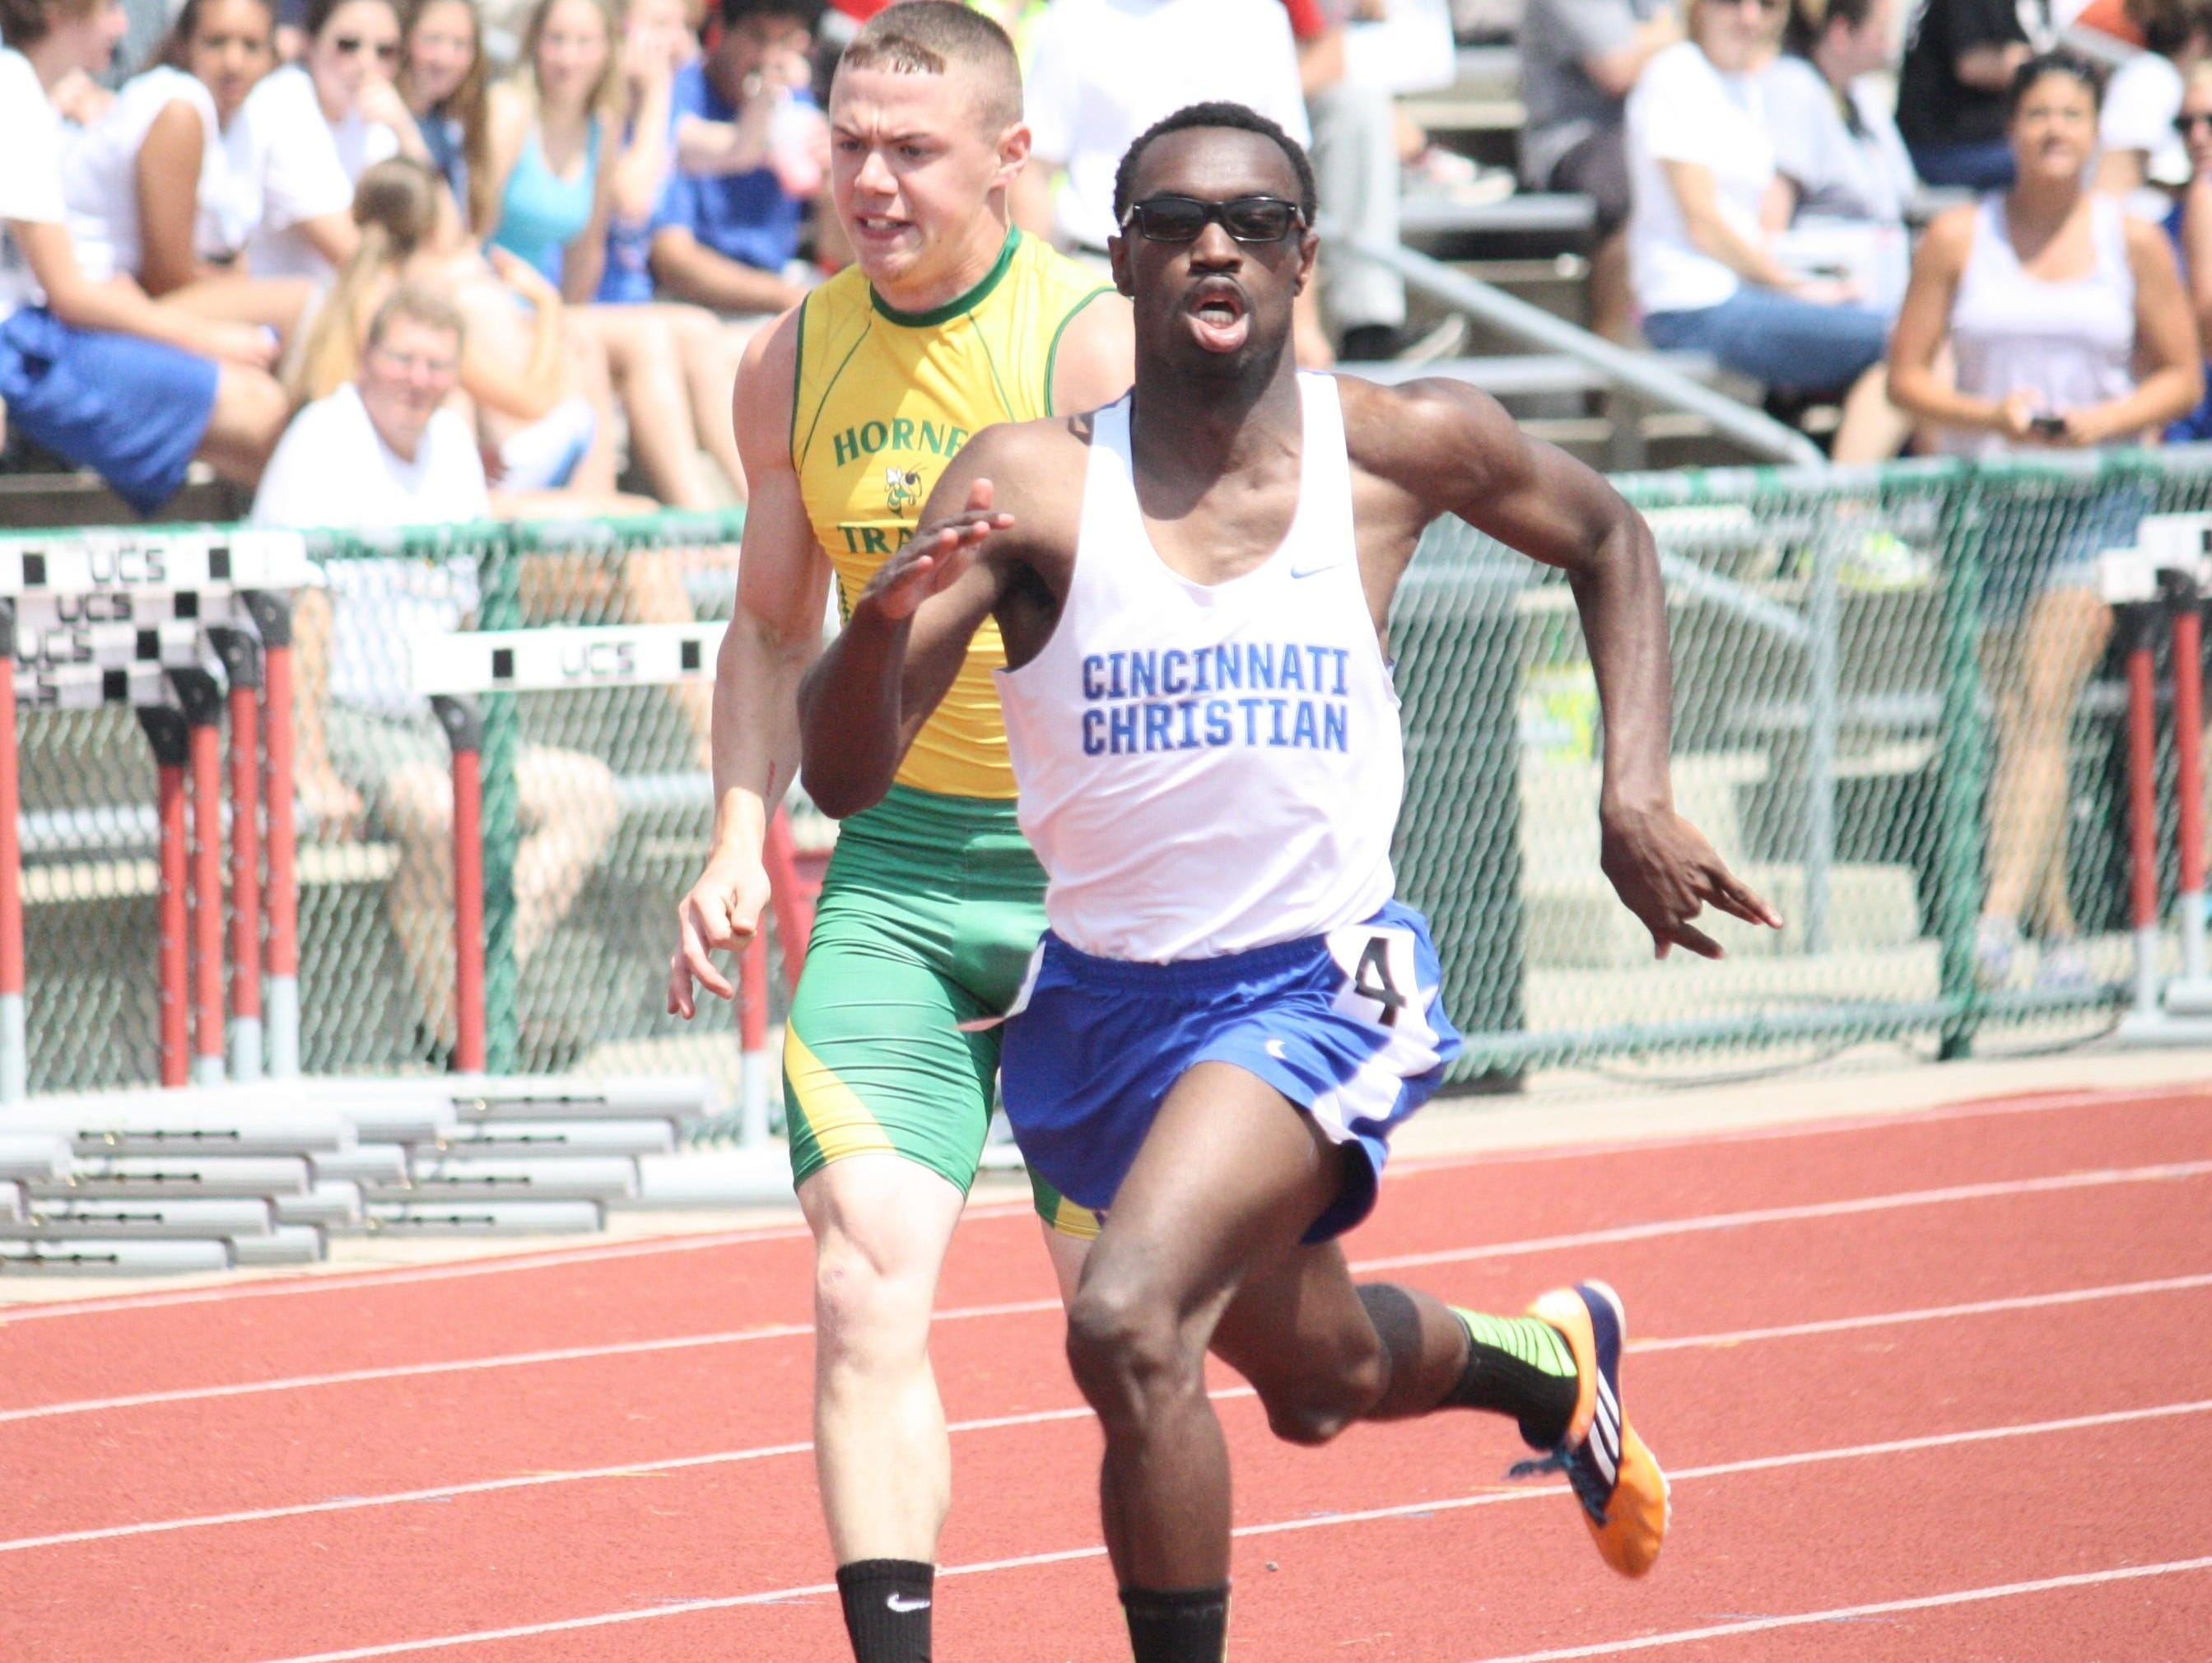 Cincinnati Christian's Kameron Antwine wins the second heat of the 200 meters at the Division III state meet.